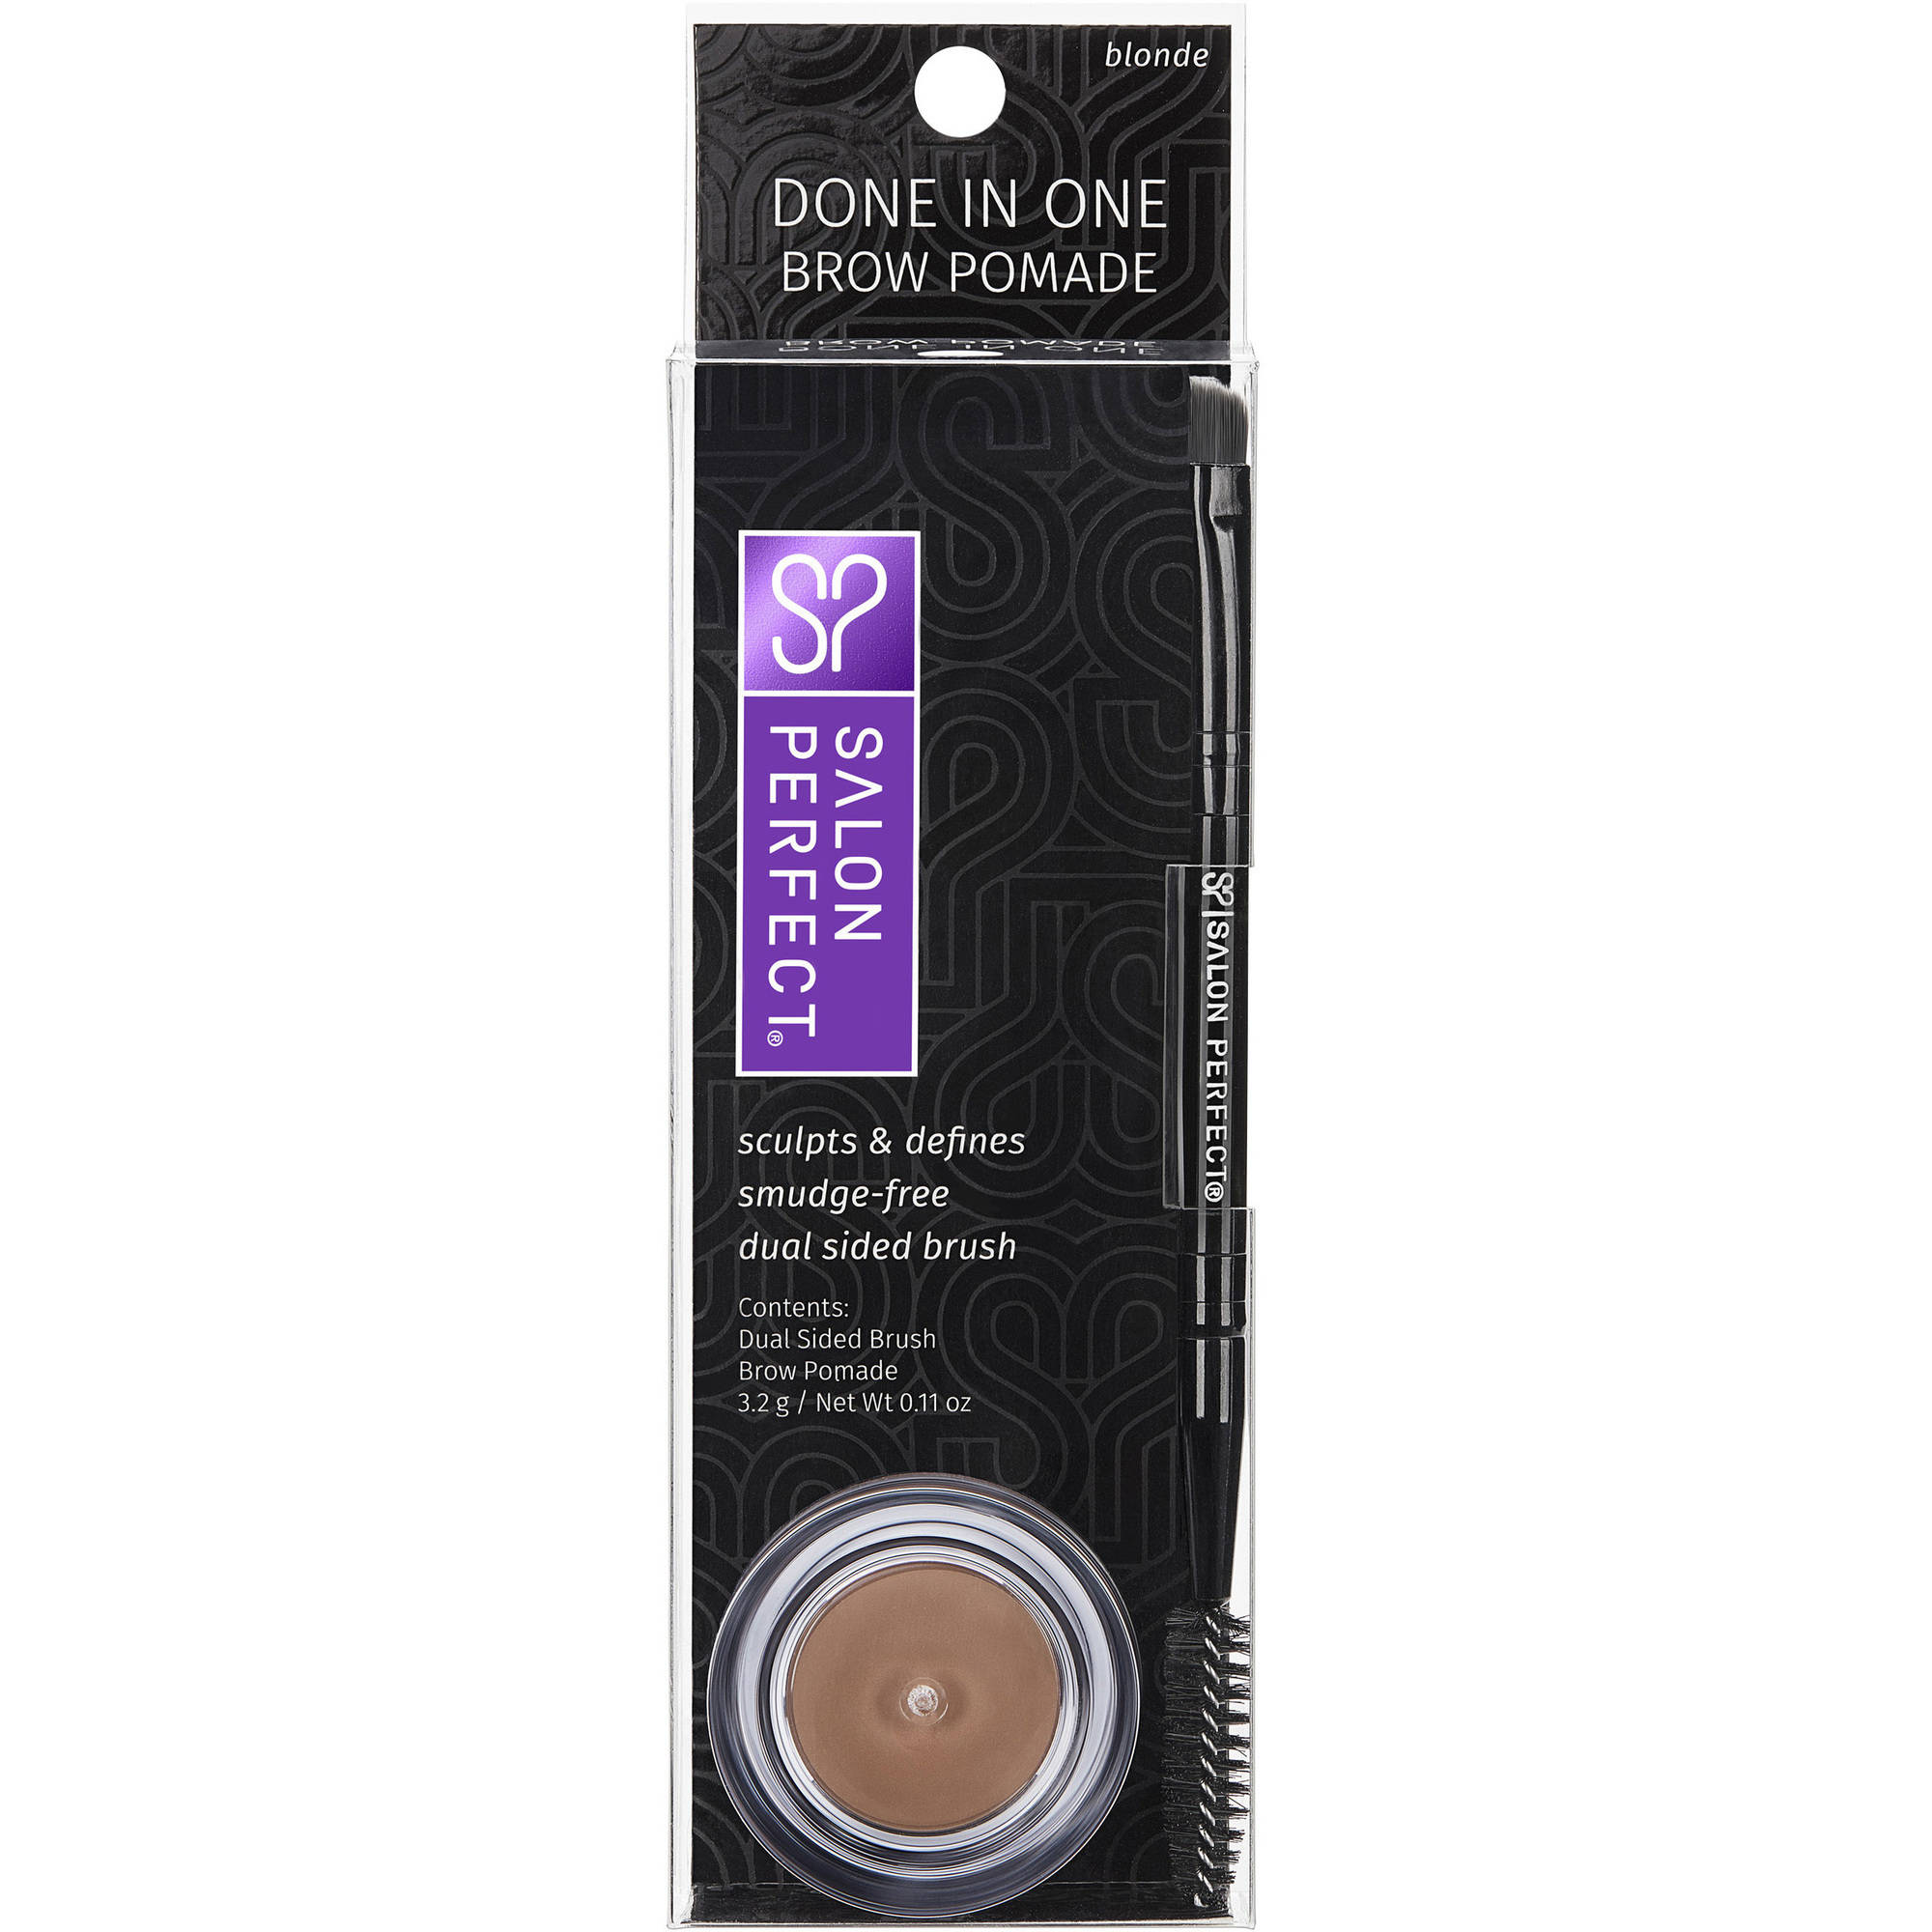 Salon Perfect Blonde Brow Pomade, 0.11 oz